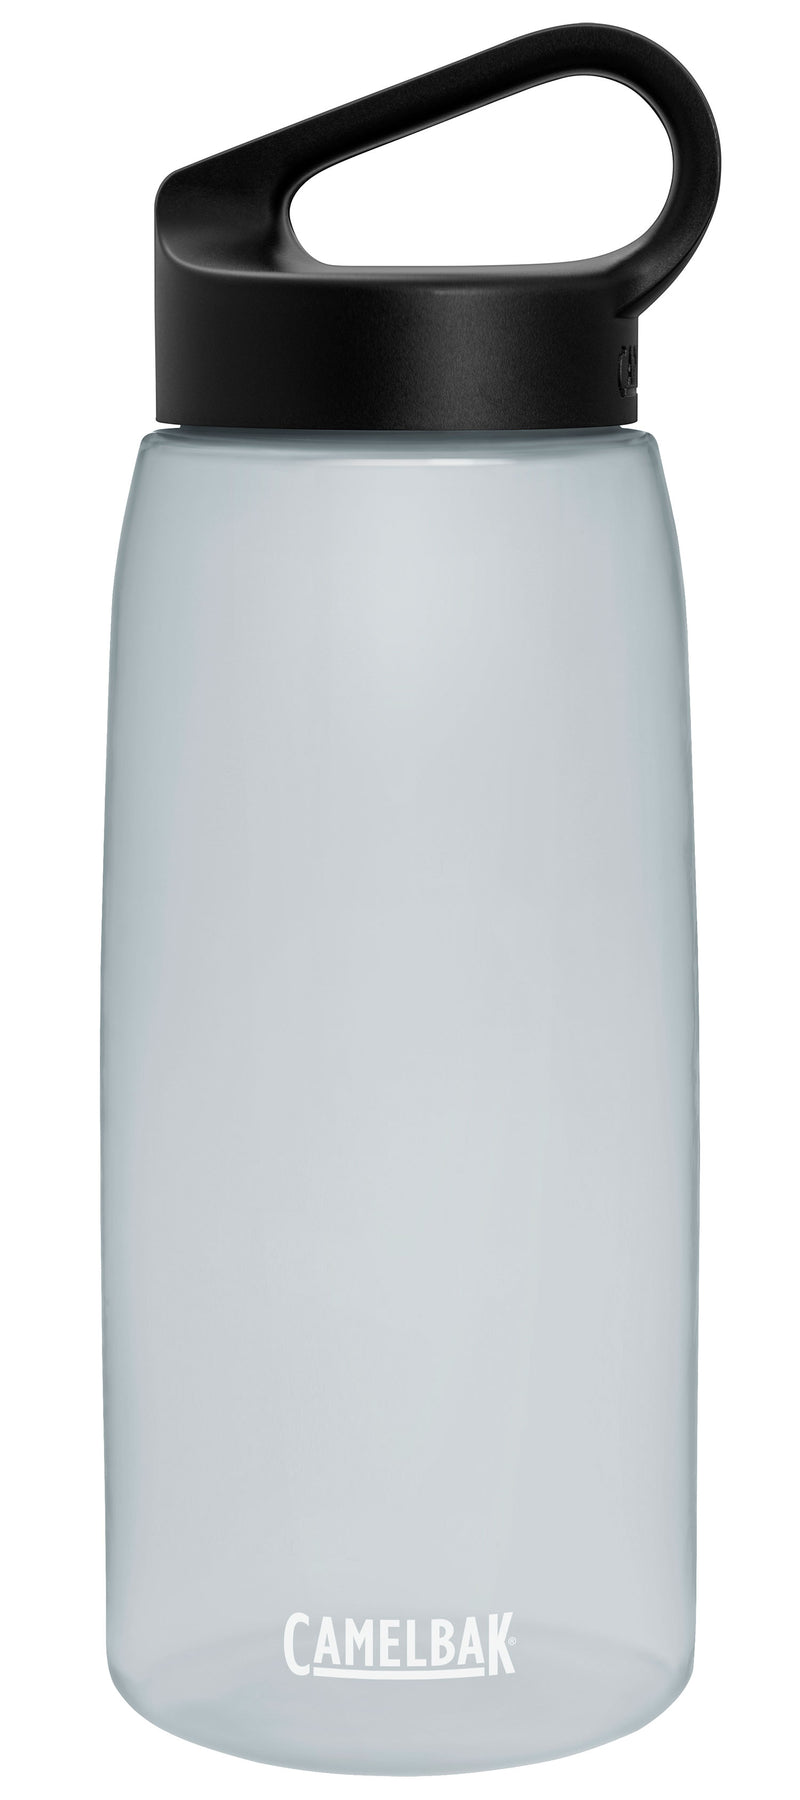 Cloud 1 litre water bottle